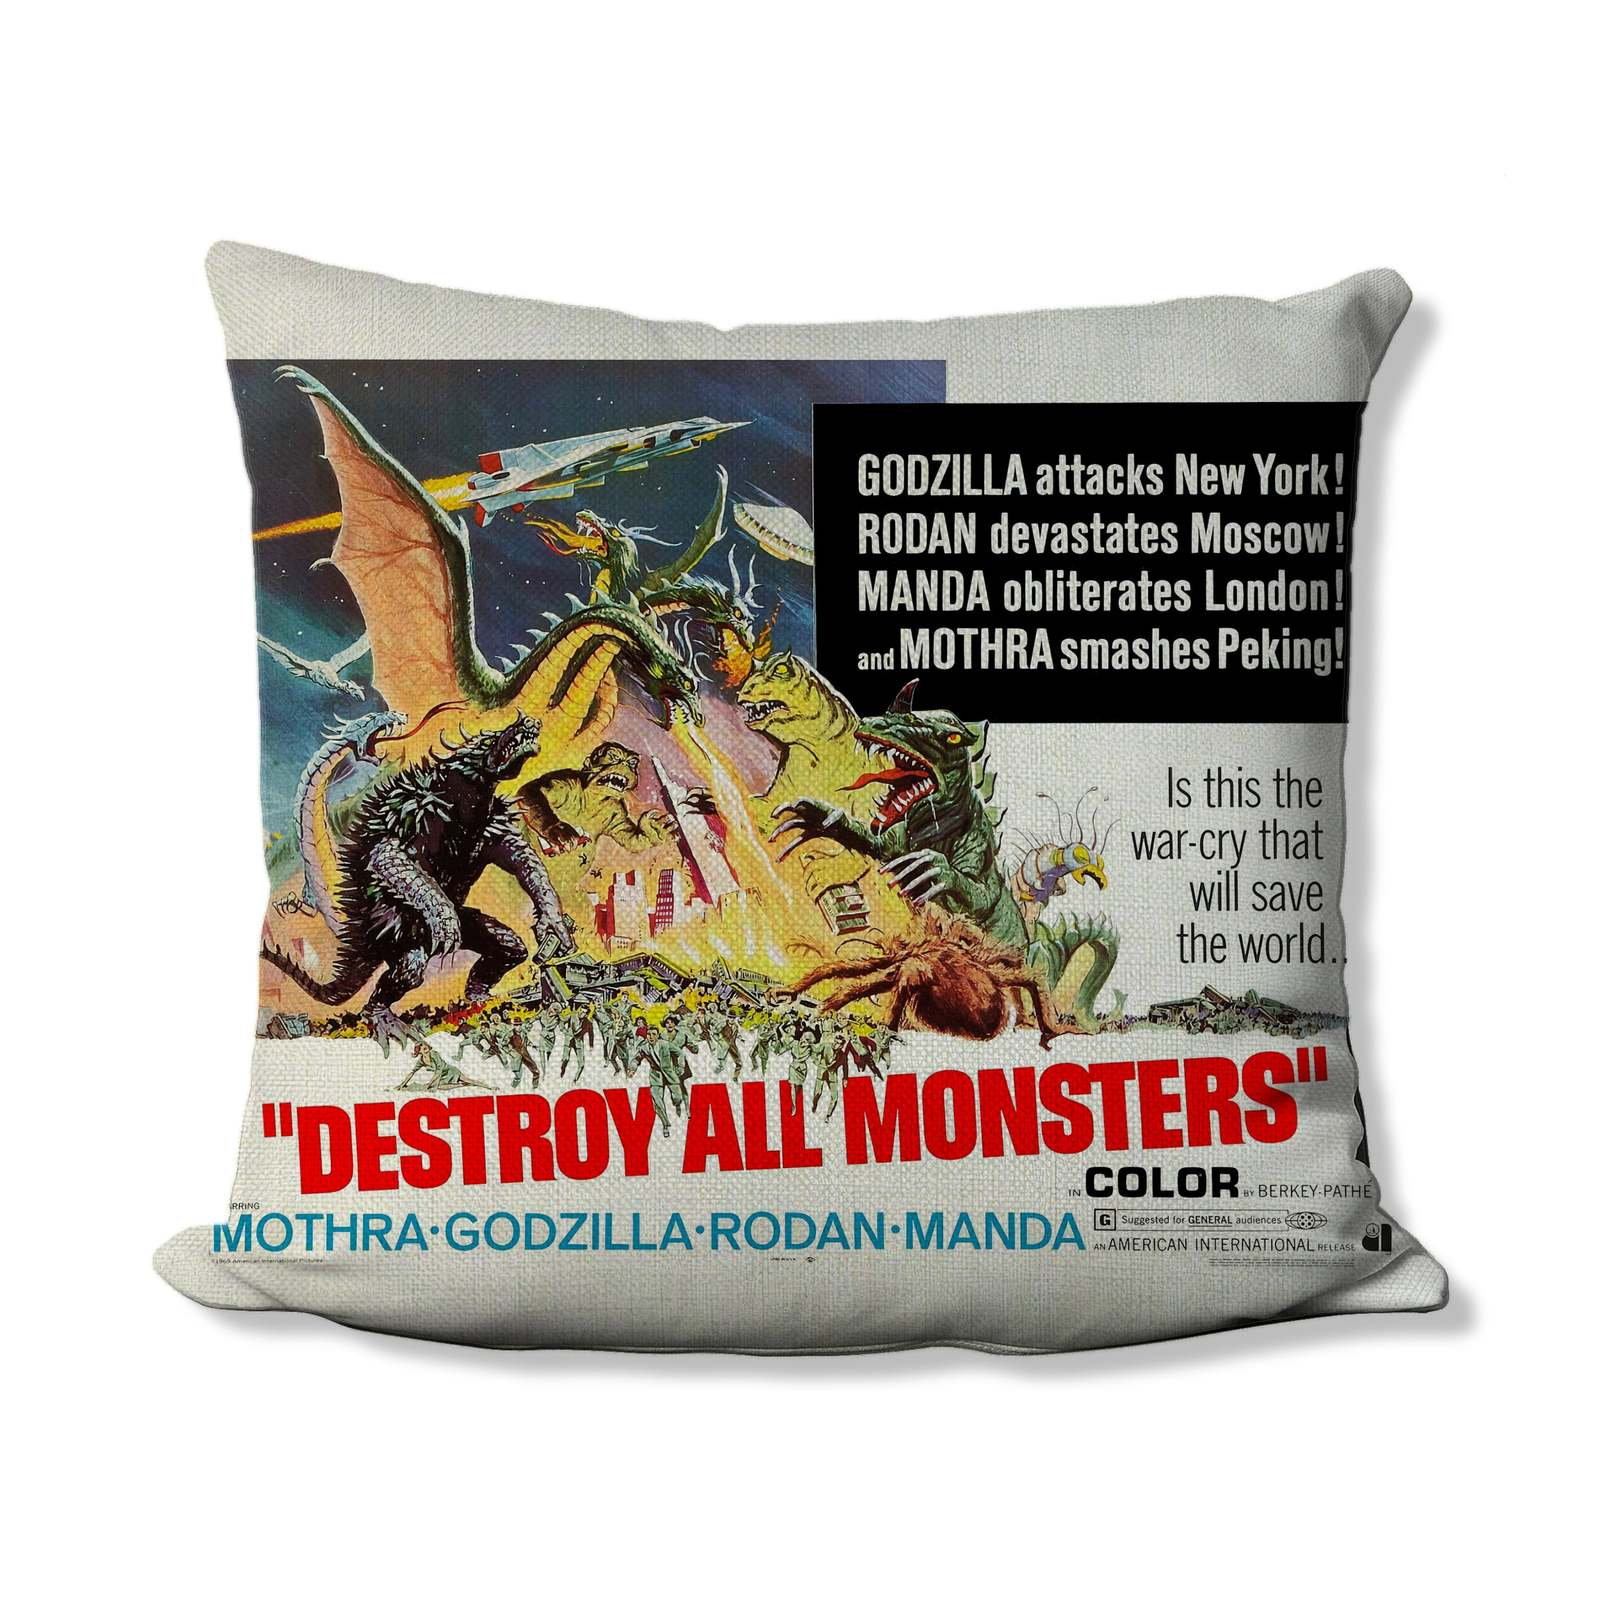 1968 Godzilla Destroy all Monsters Movie Poster Throw Pillow Cover - King Ghidor - $19.99 - $39.99